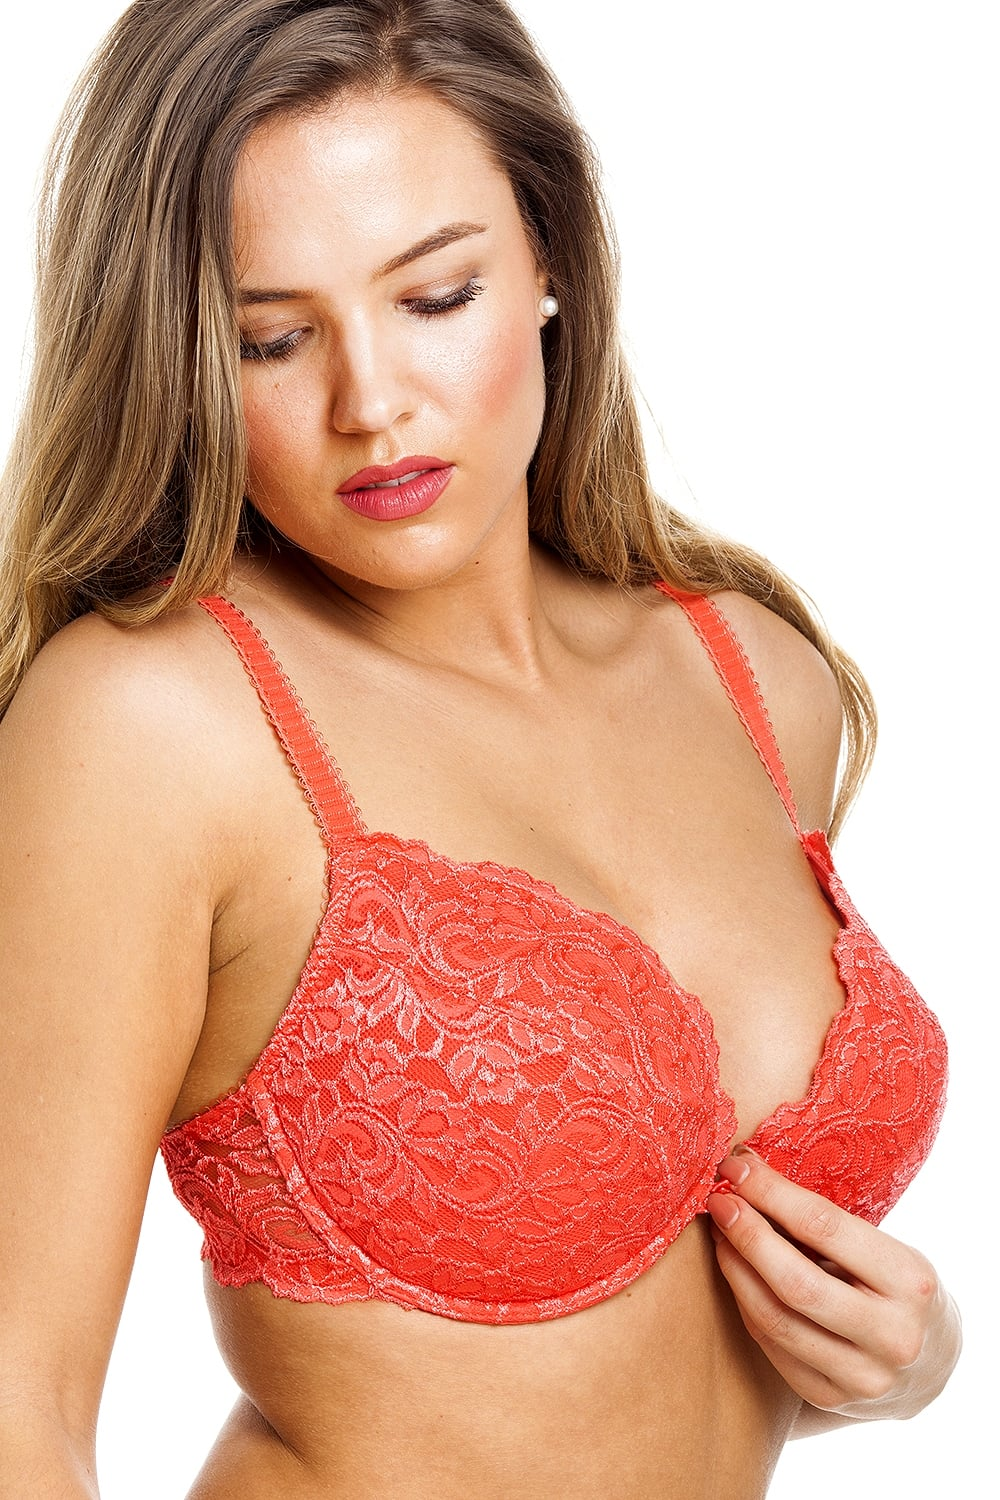 e43581c7d3d Camille Womens Ladies Tangerine Push Up Plunge Padded Underwired Bra ...